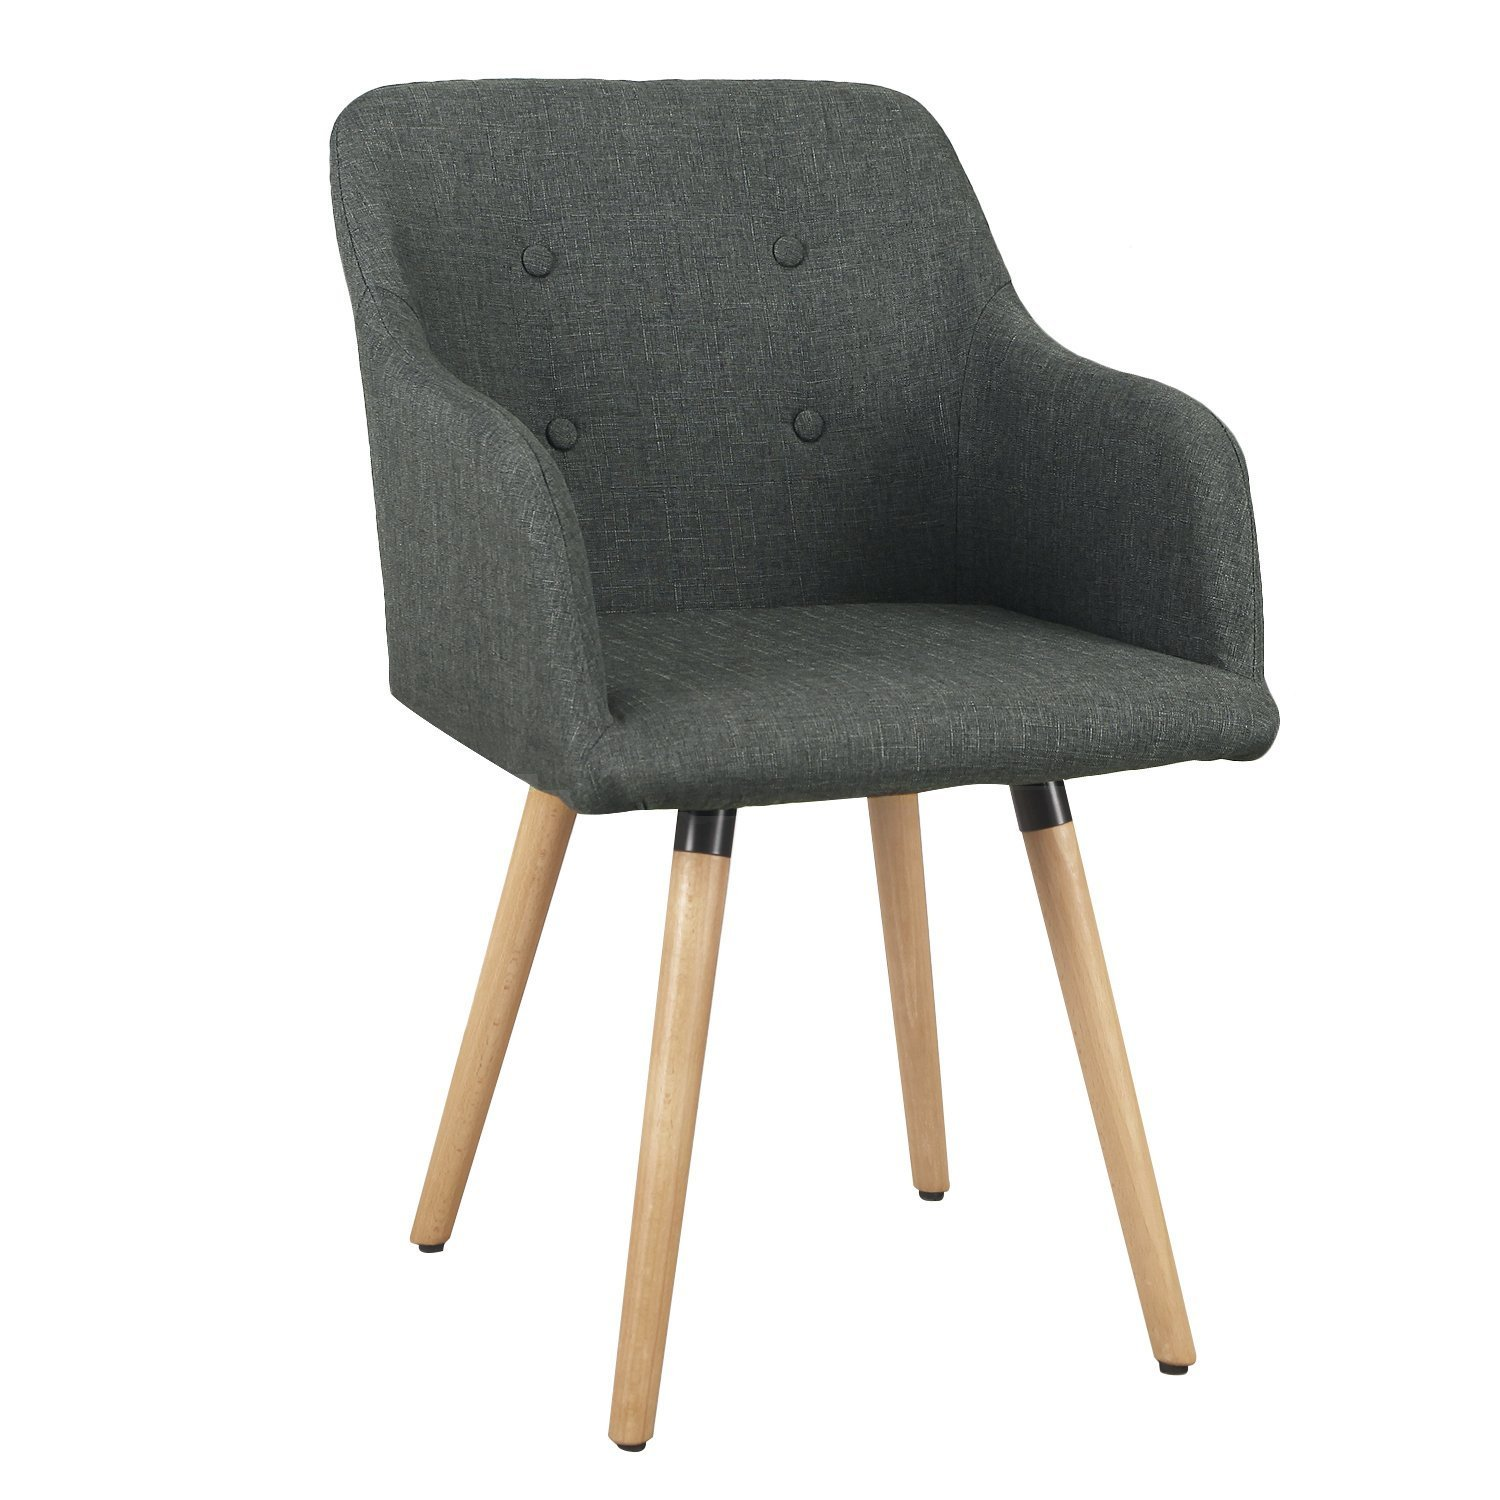 DecentHome Bacco Style Living Room Dining Room Home Bar Counter Stool, with High Armrest, Button Tufted Back and Wood Legs (Charcoal)